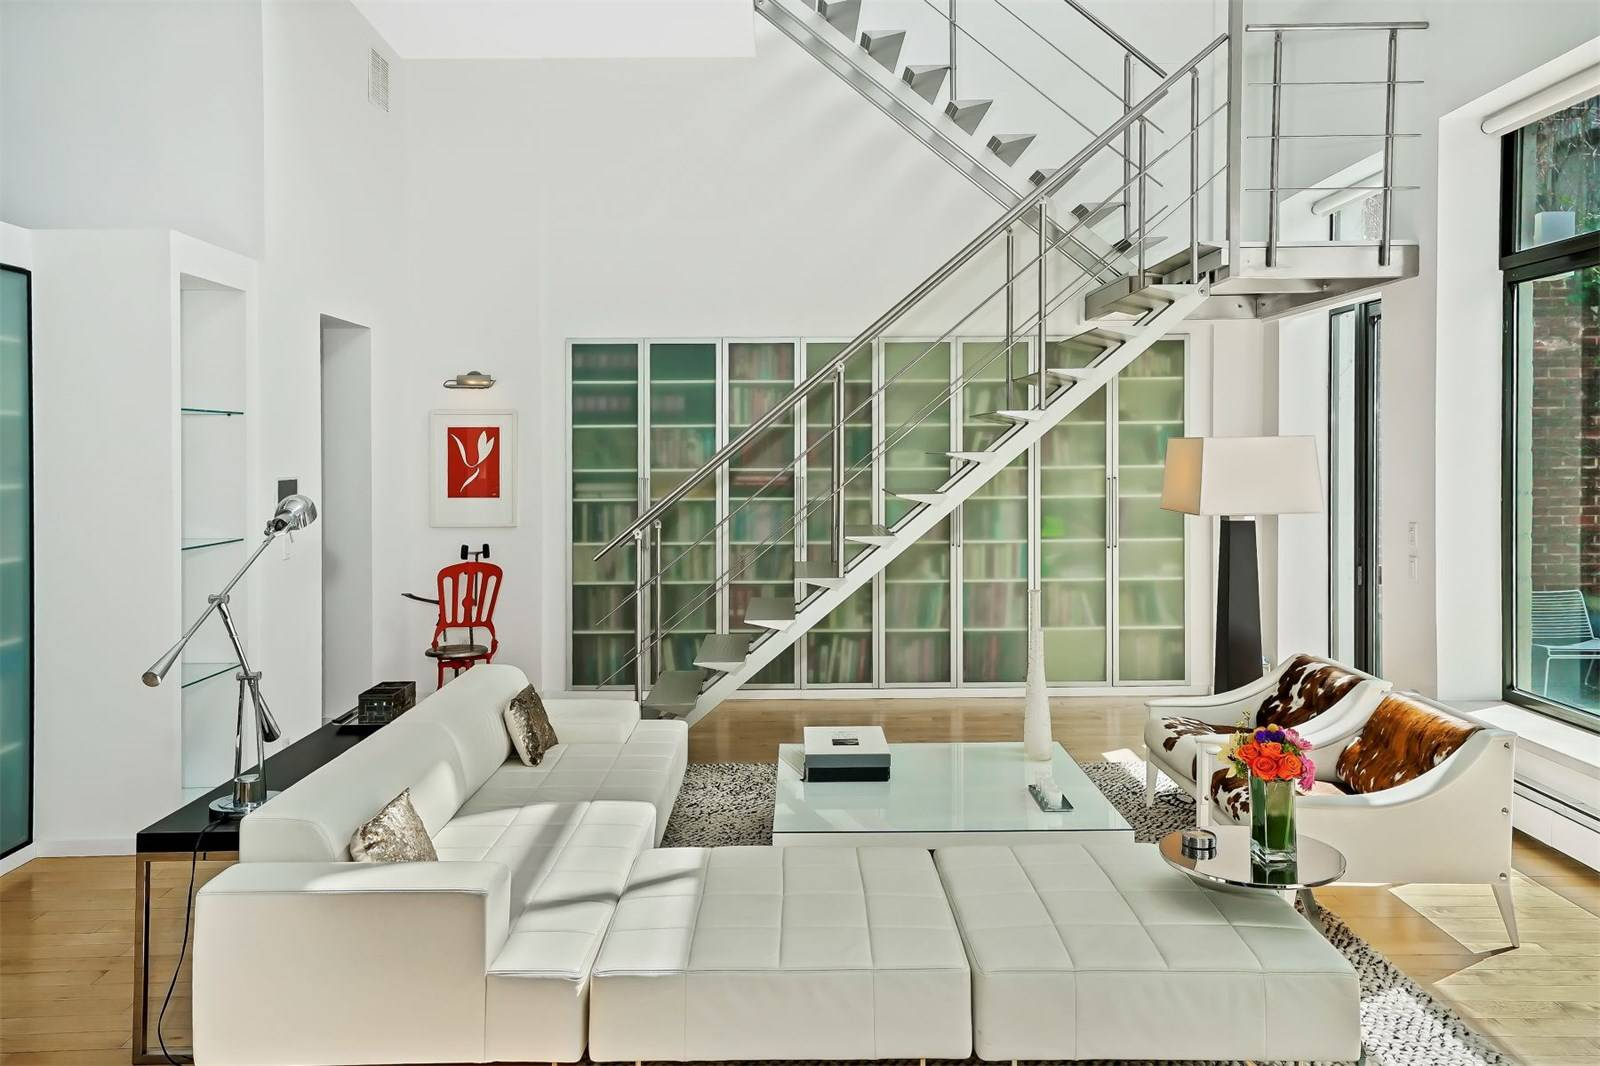 STAIRPLANE™ AND SOTHEBY'S